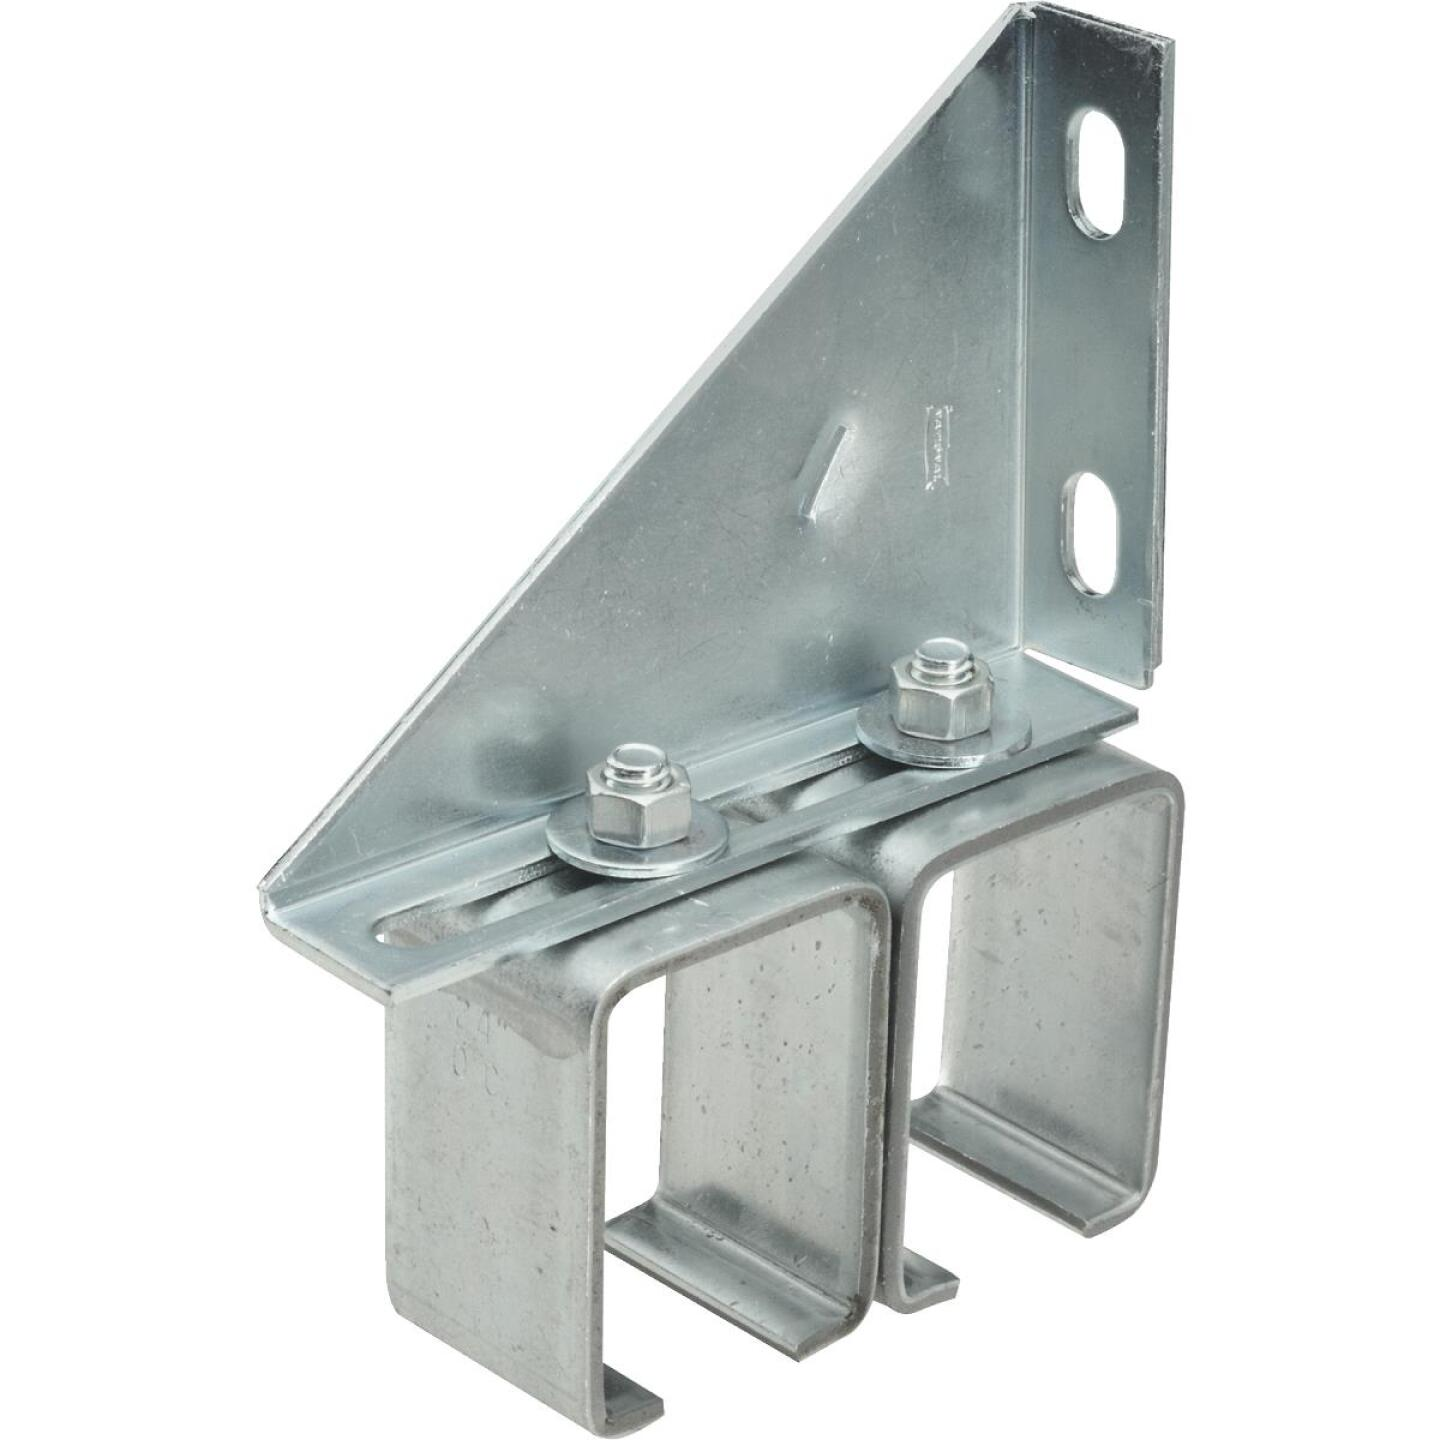 National Galvanized Double Box Rail Barn Door Bracket Image 1